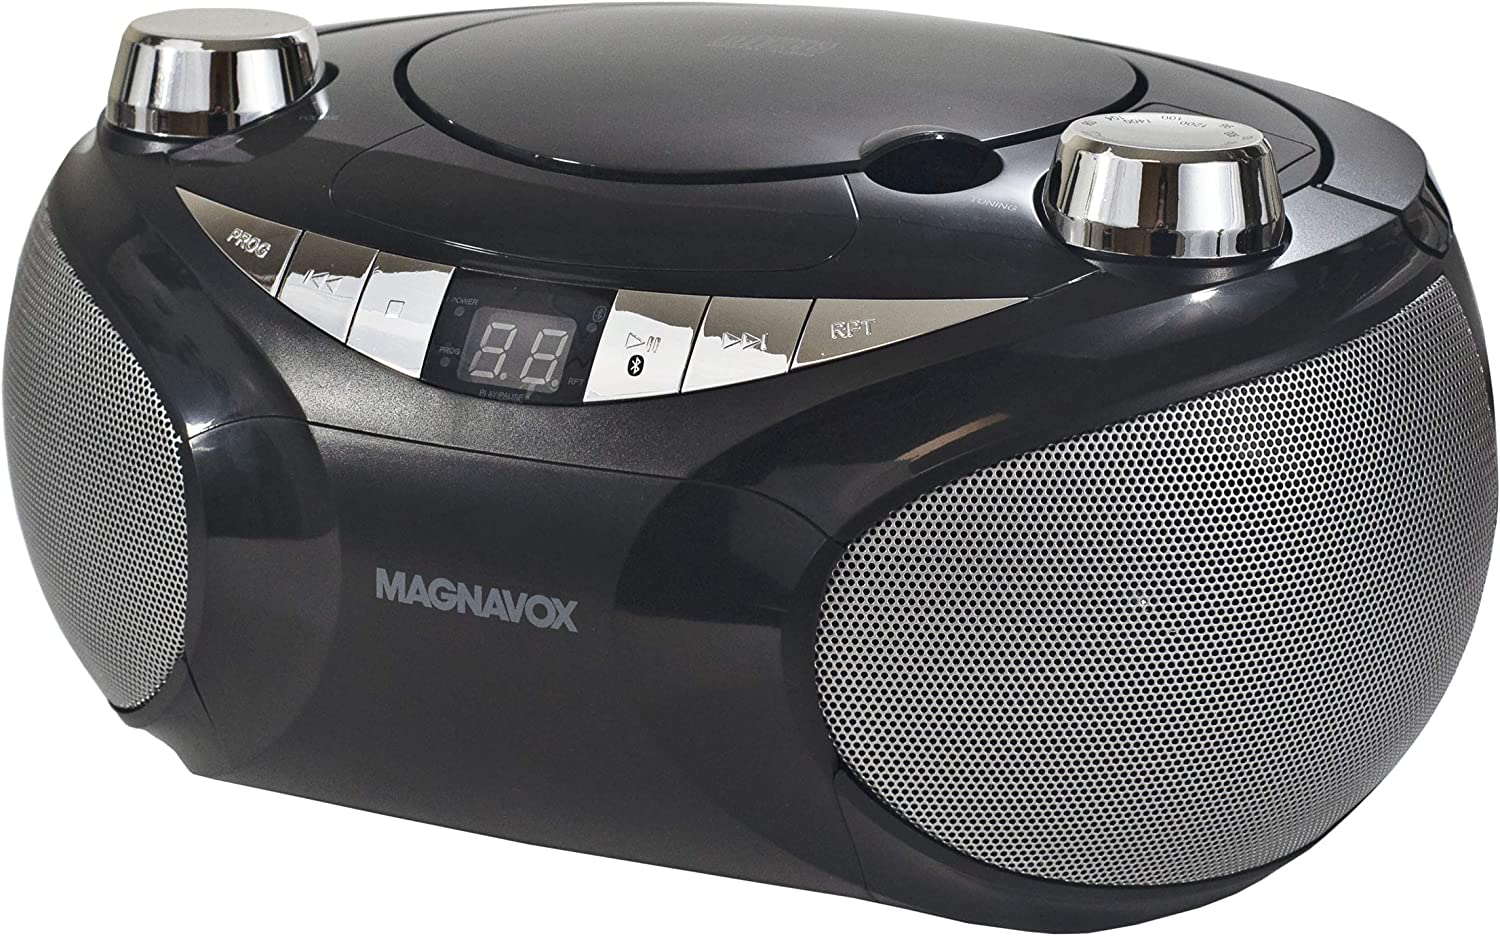 MAGNAVOX MD6949-BK Portable Top Loading CD Boombox with AM/FM Stereo Radio and Bluetooth Wireless Technology in Black | CD-R/CD-RW Compatible | LED Display |